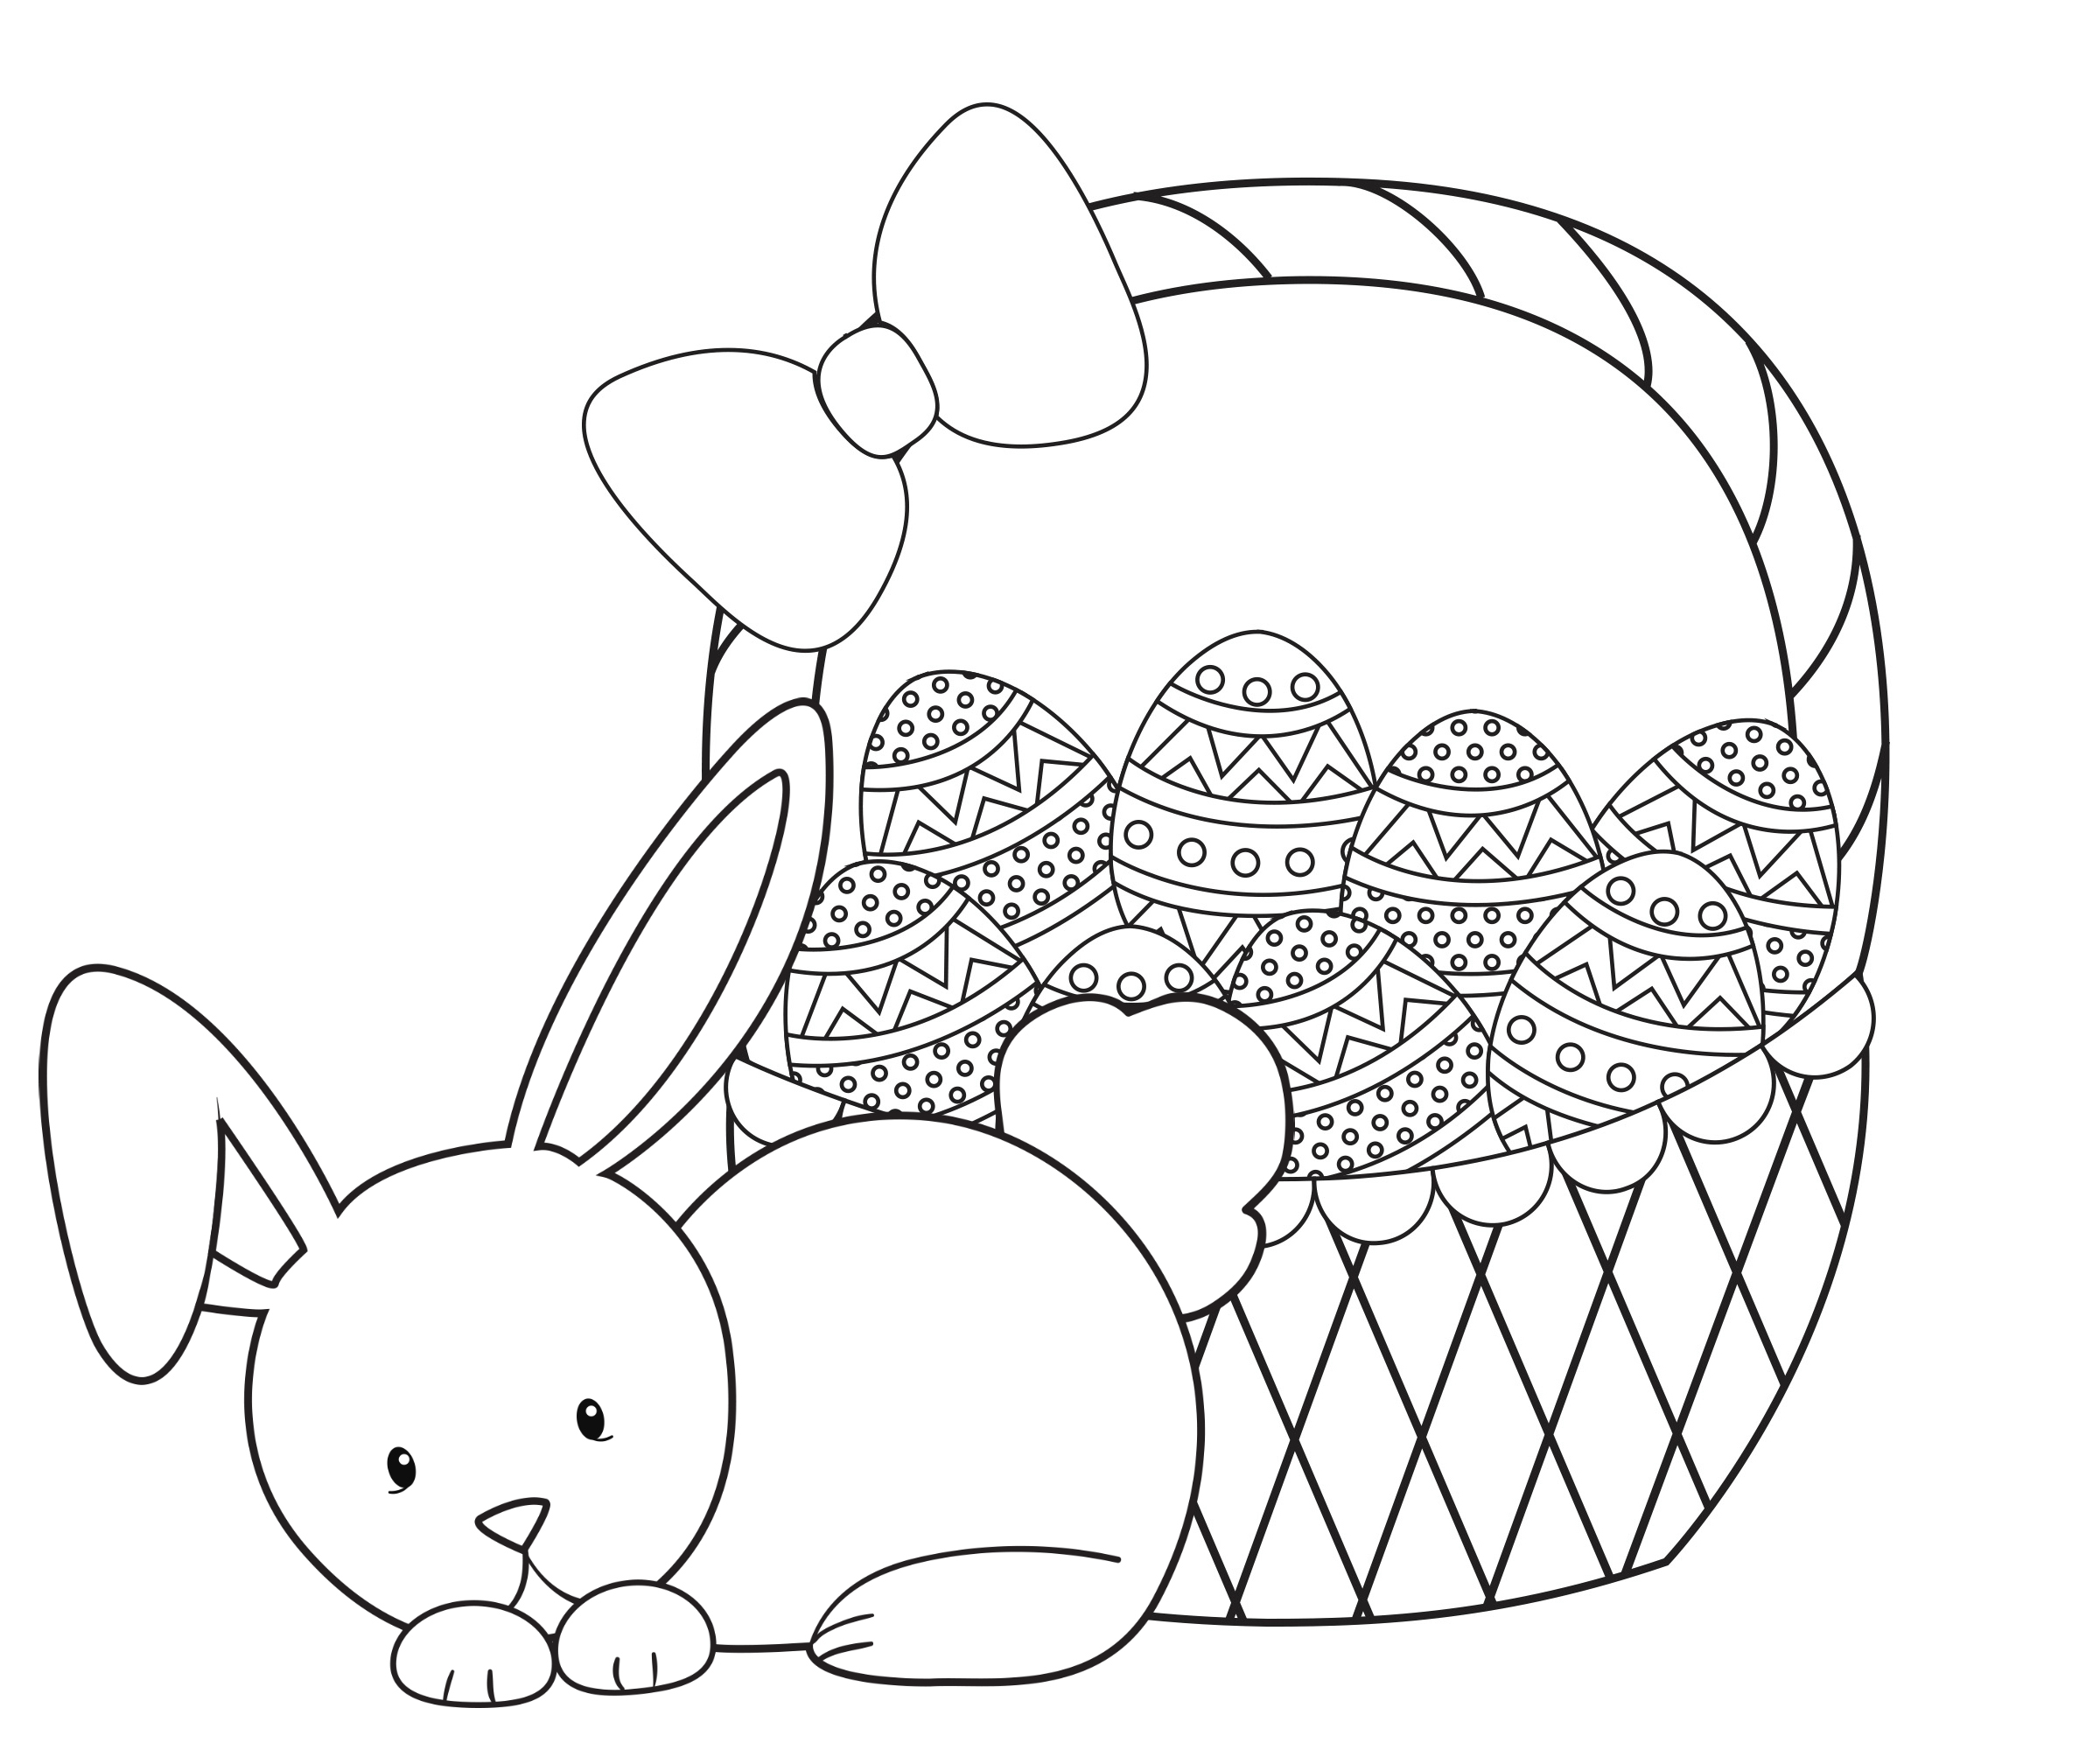 Printable coloring pages bunnies - Bunny Basket Coloring Page Bunnybasketcoloringpage